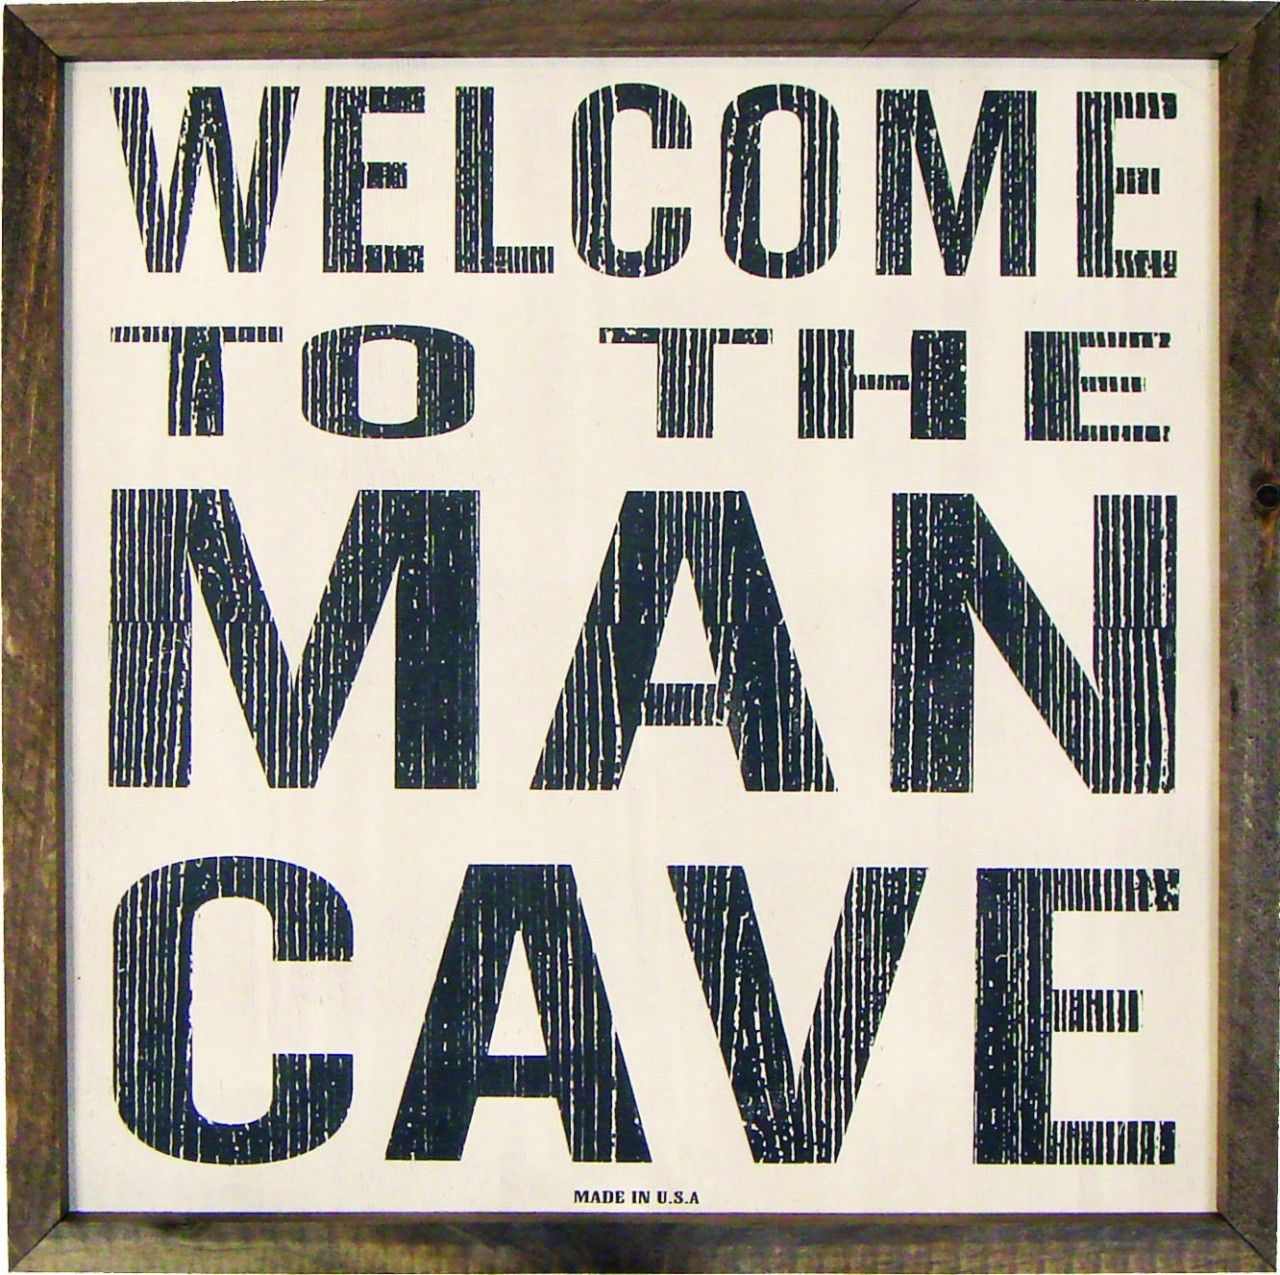 Man Cave Market : Country marketplace welcome to the man cave sign